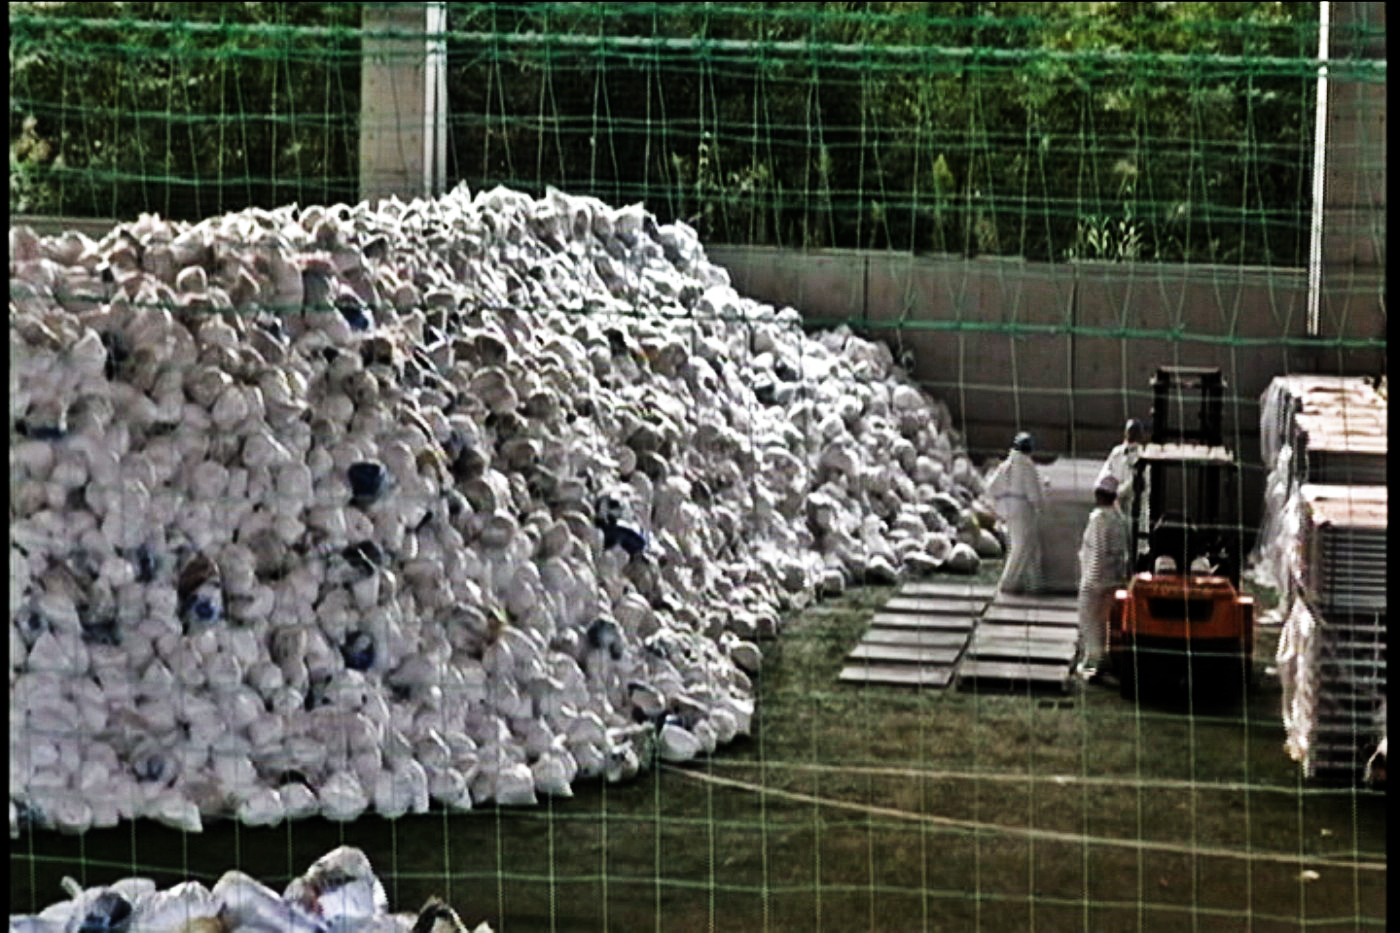 Radioactive wastes dump (Tyvek etc) (2)a